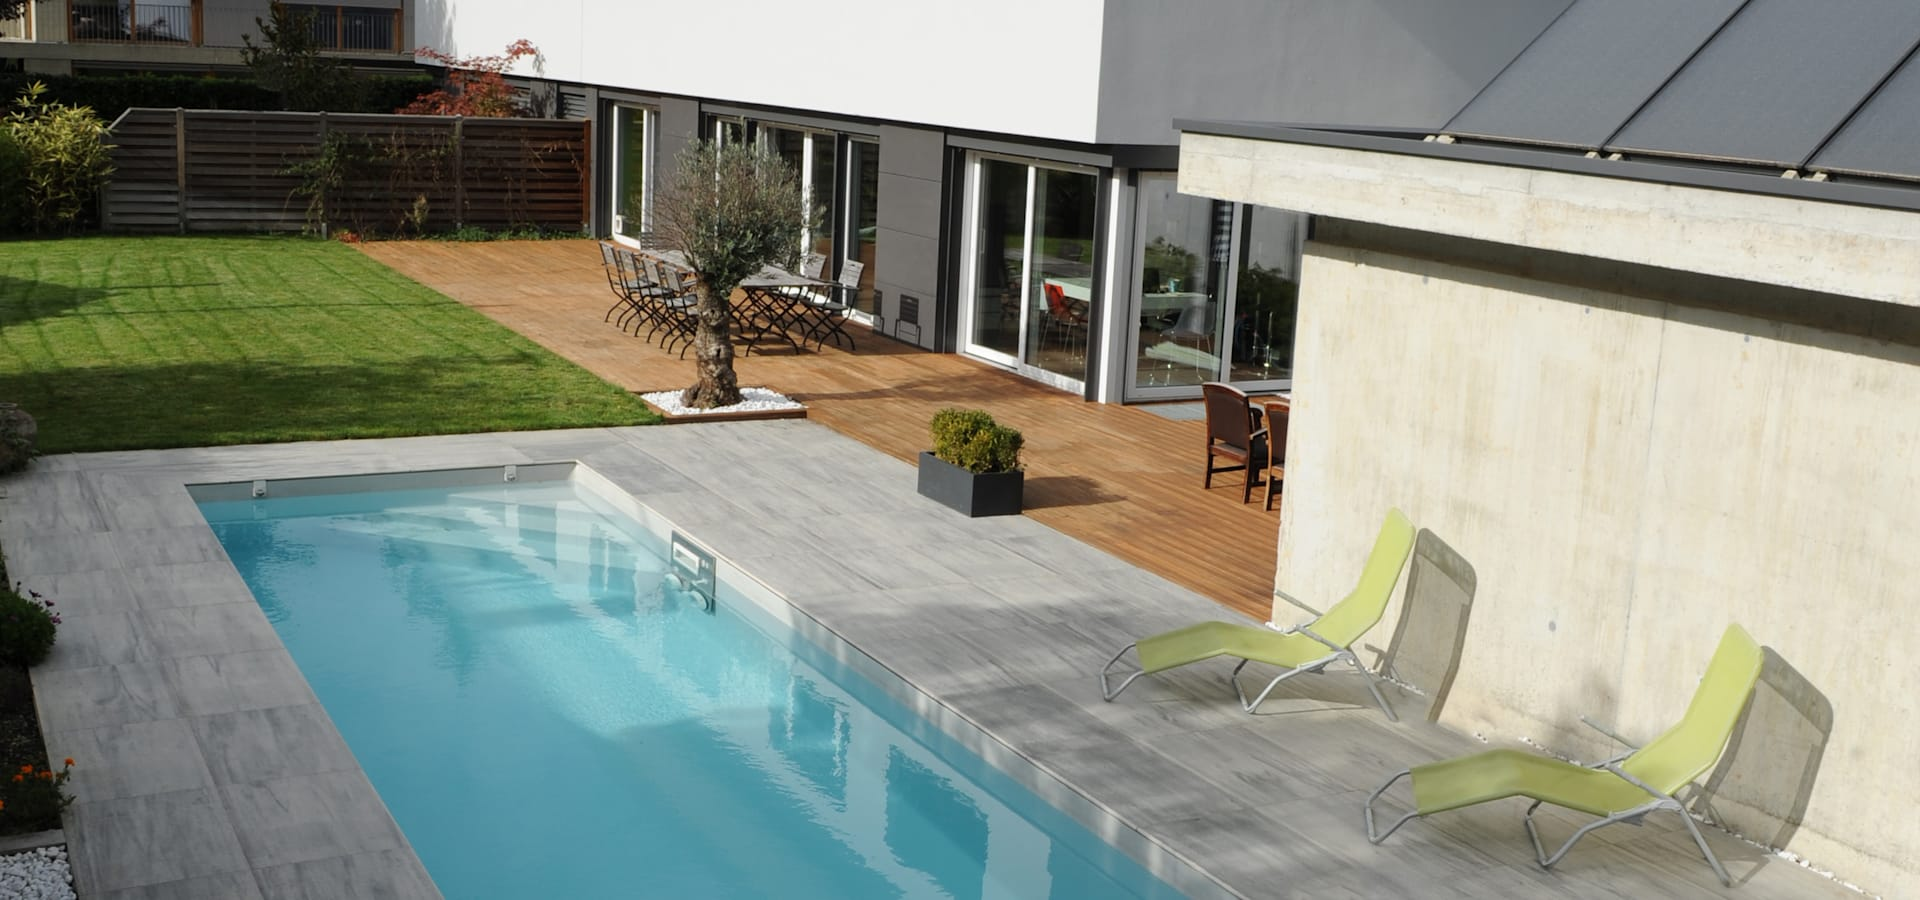 Piscines contemporaines por piscinelle homify for Piscines contemporaines